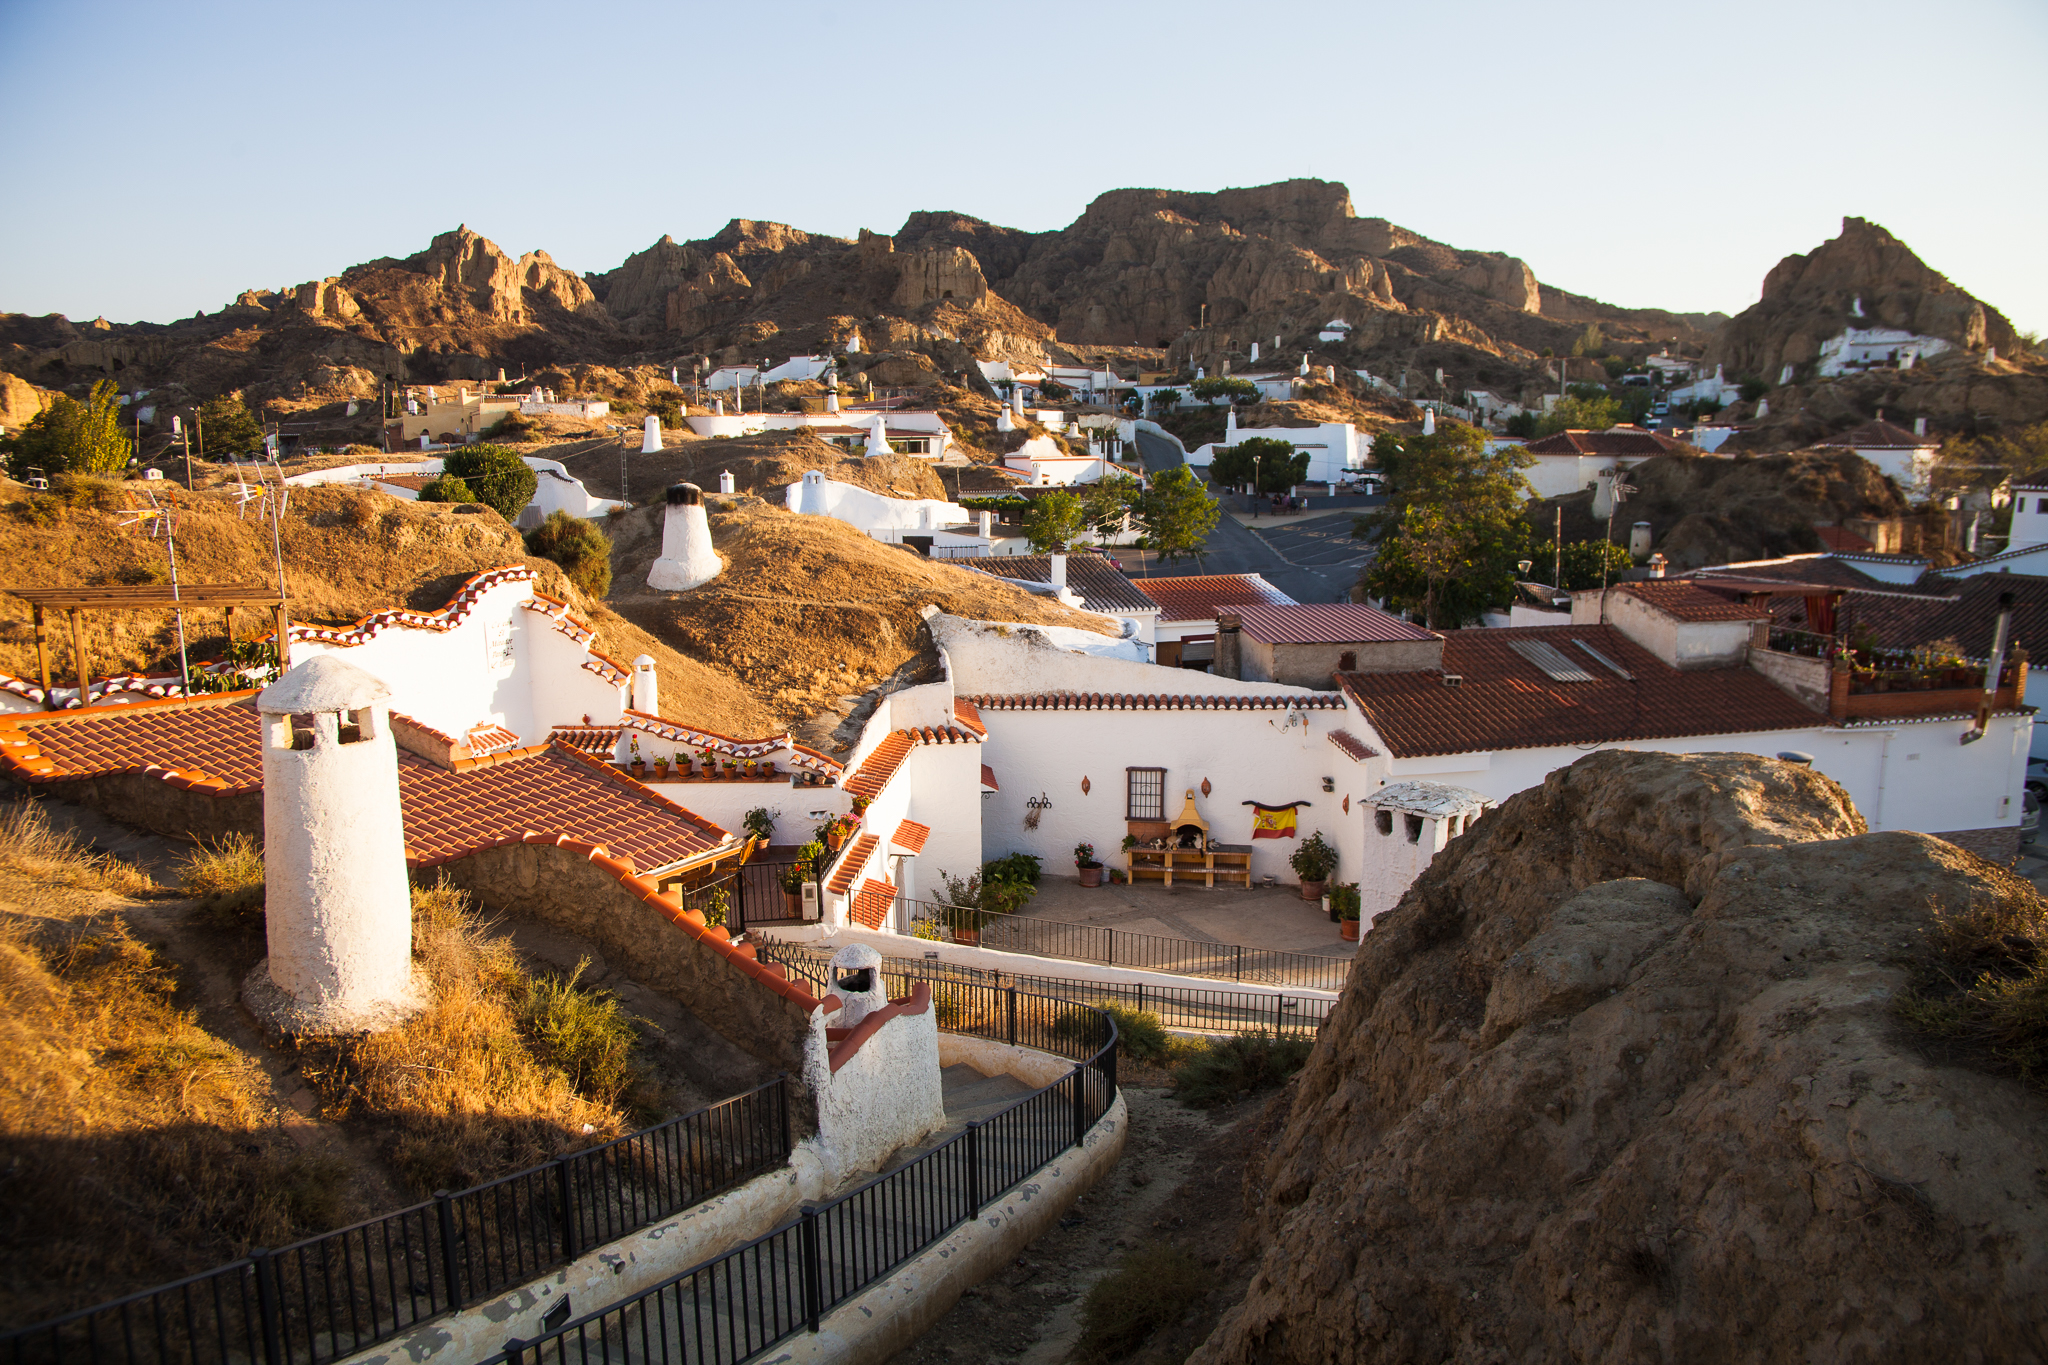 A photo I took in Guadix 2 years ago